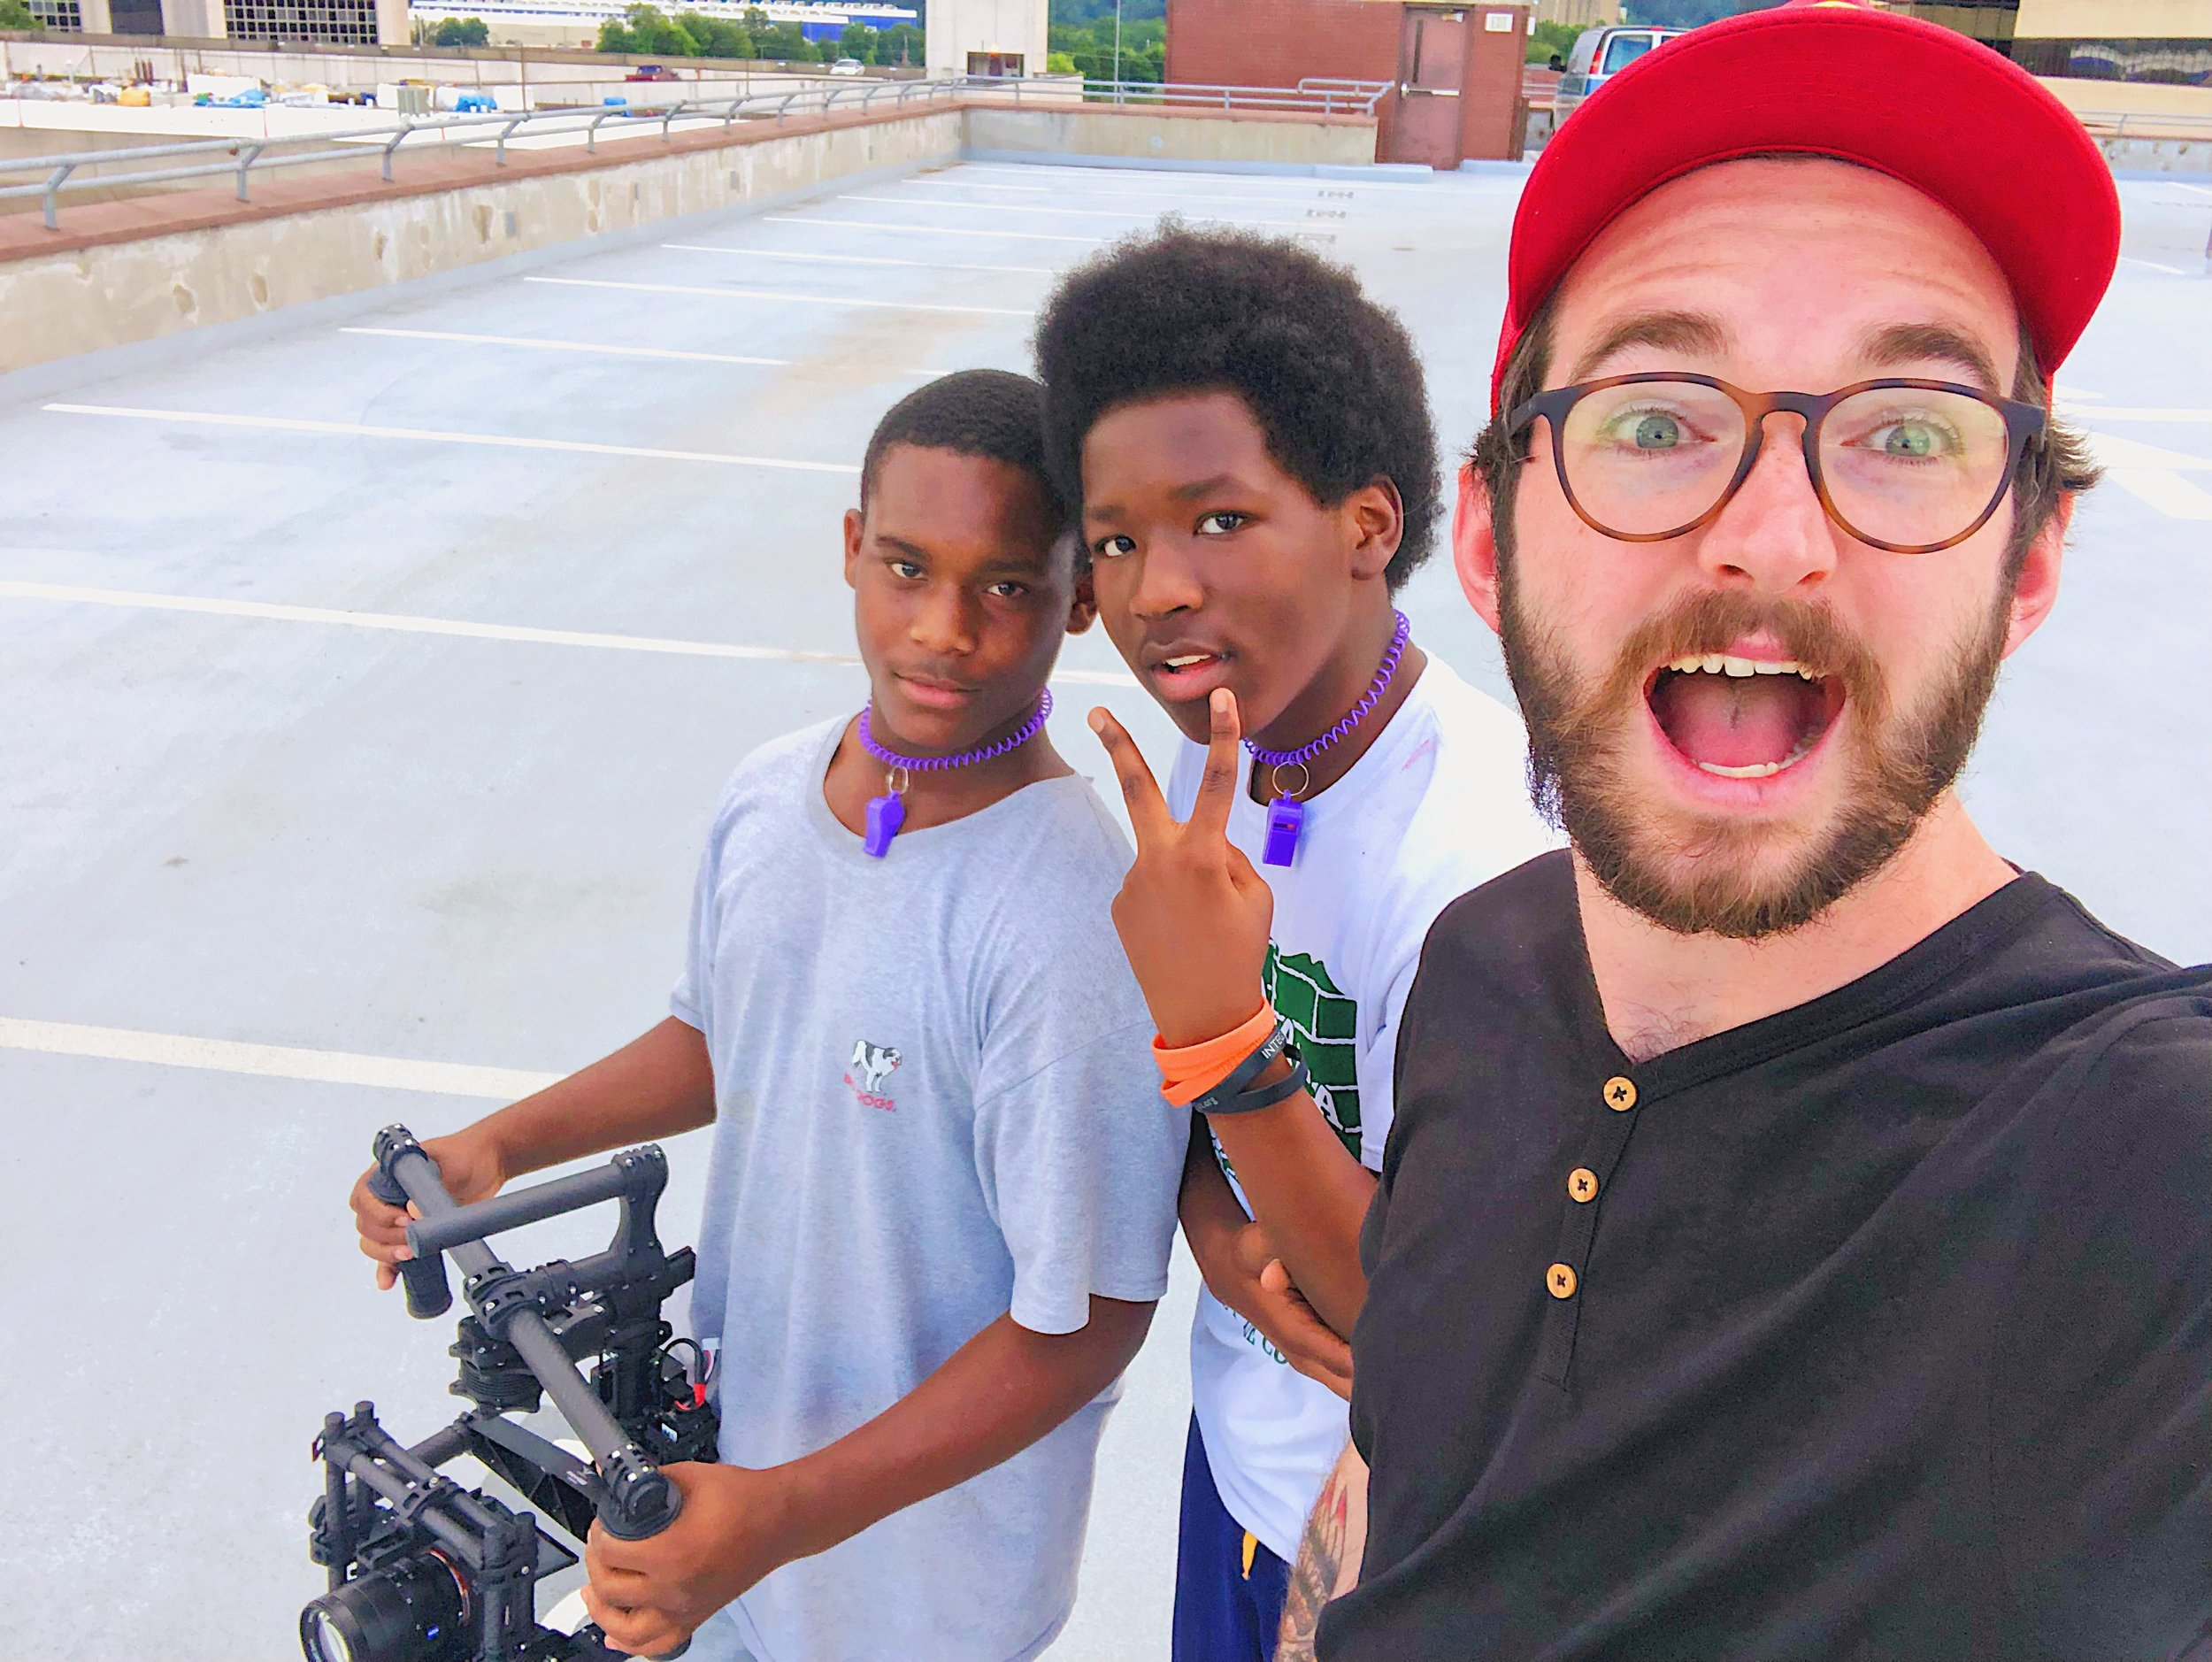 Local East Lake students shooting a music video on top of the EPB building.